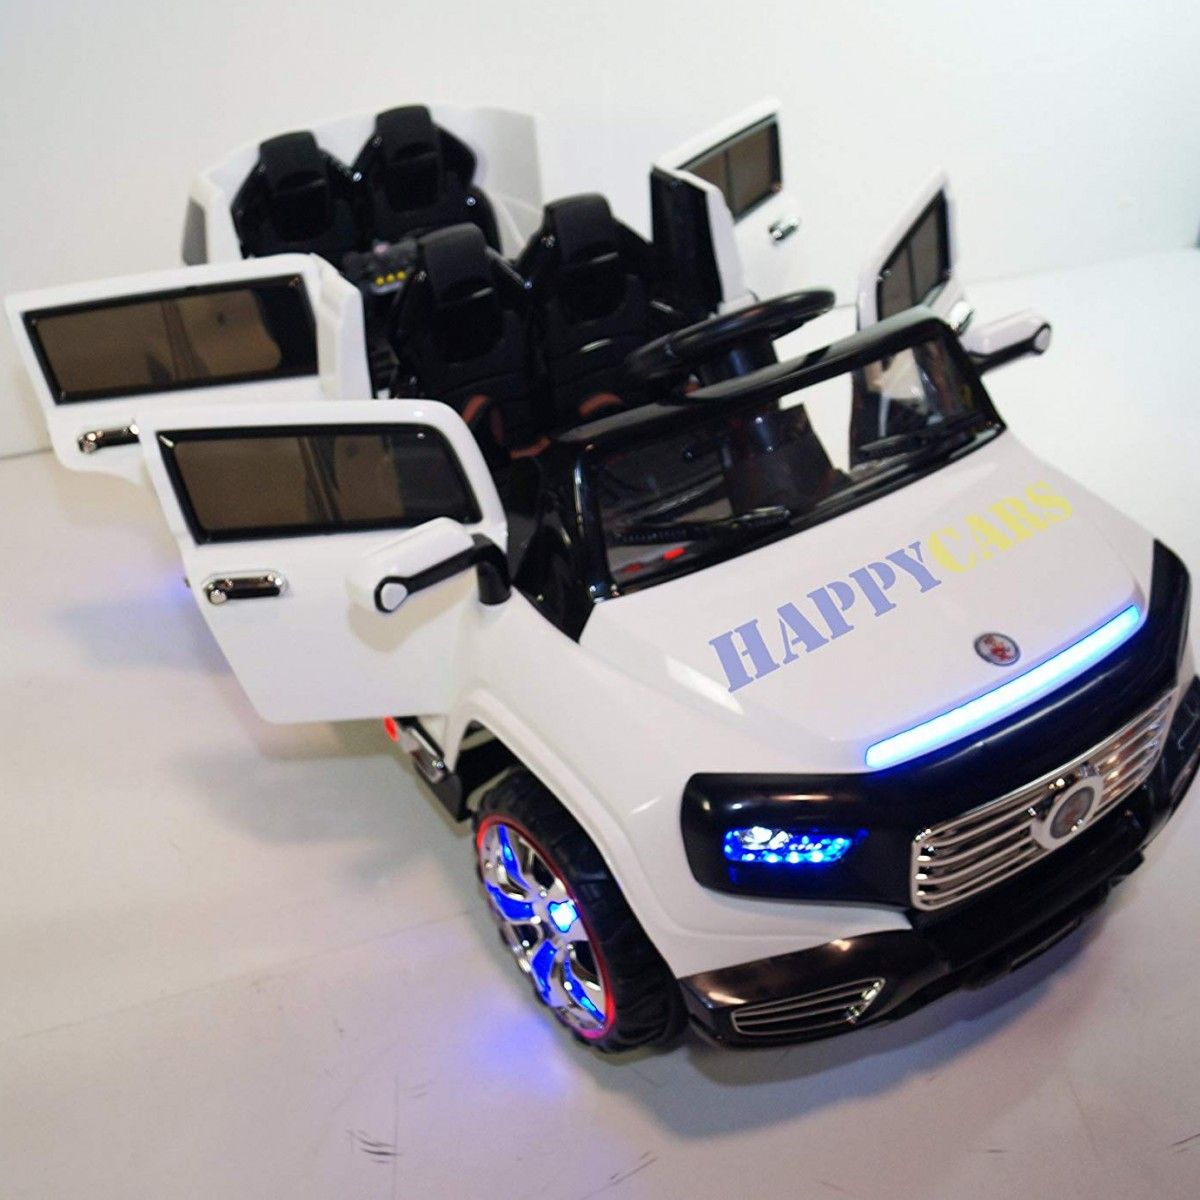 Electric Cars For Kids 4 Seater Best Of Children Ride On Sx1528 White 4 Doors Kids Car Baby In 2020 Kids Ride On Toys Bmw Electric Car Toy Cars For Kids